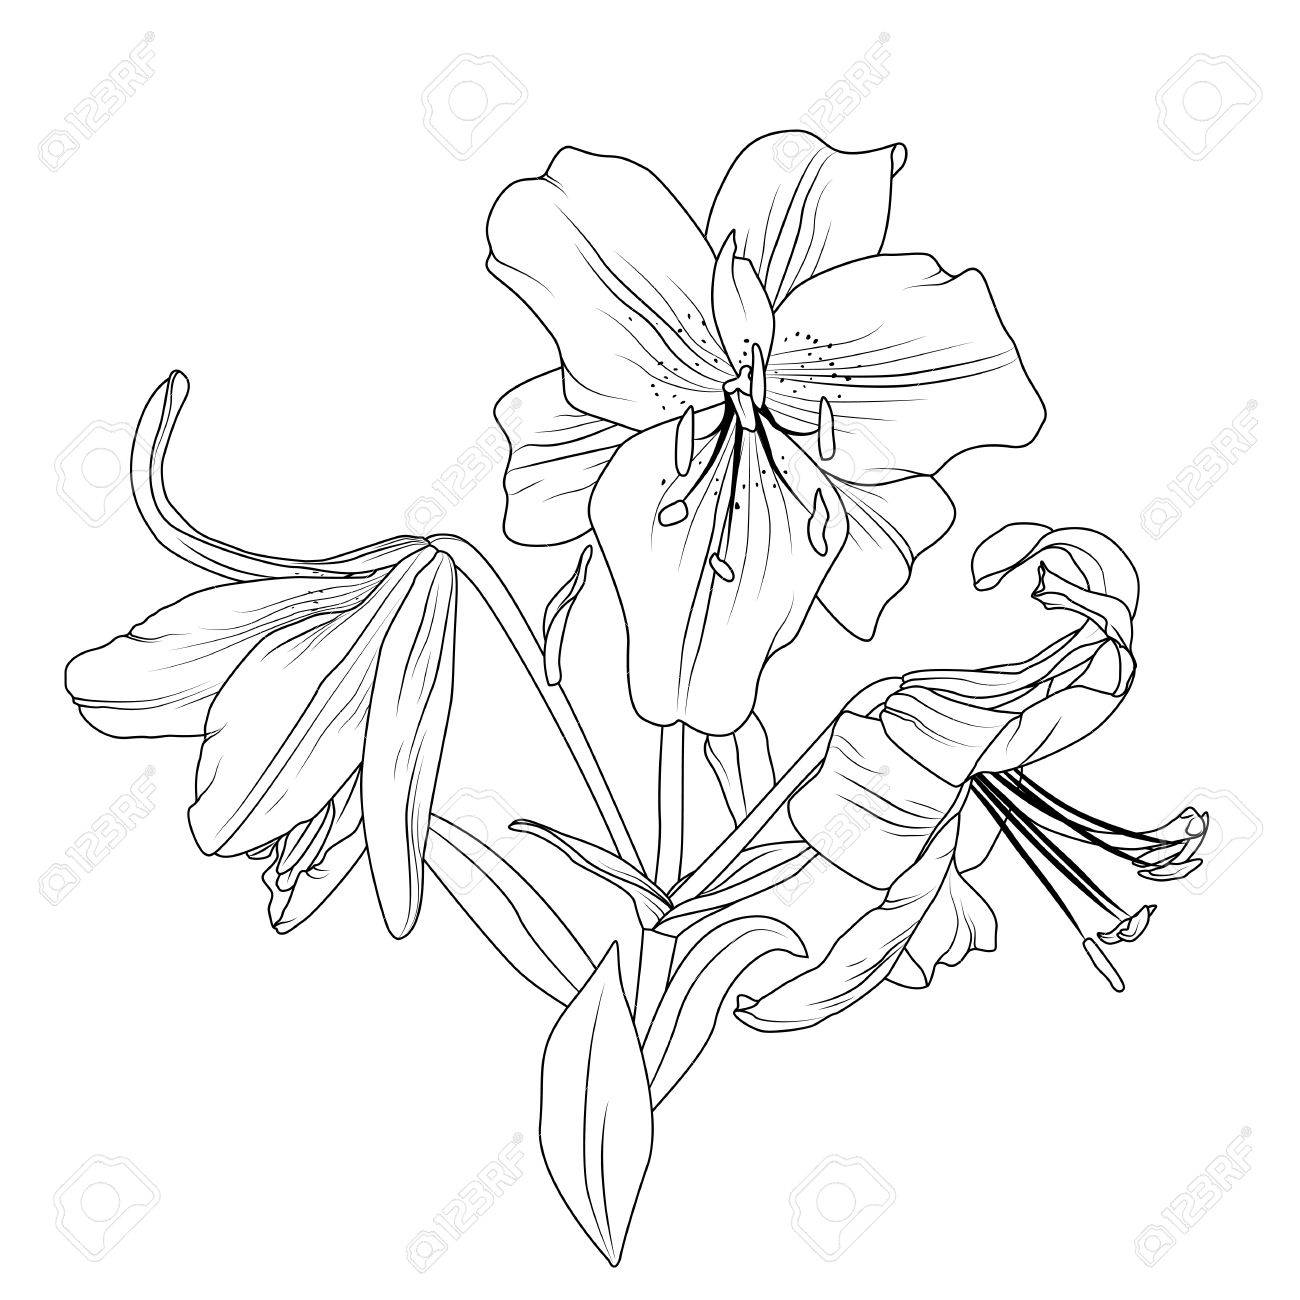 Beautiful blooming lily spring flowers bouquet composition detailed beautiful blooming lily spring flowers bouquet composition detailed outline sketch drawing isolated on white background mightylinksfo